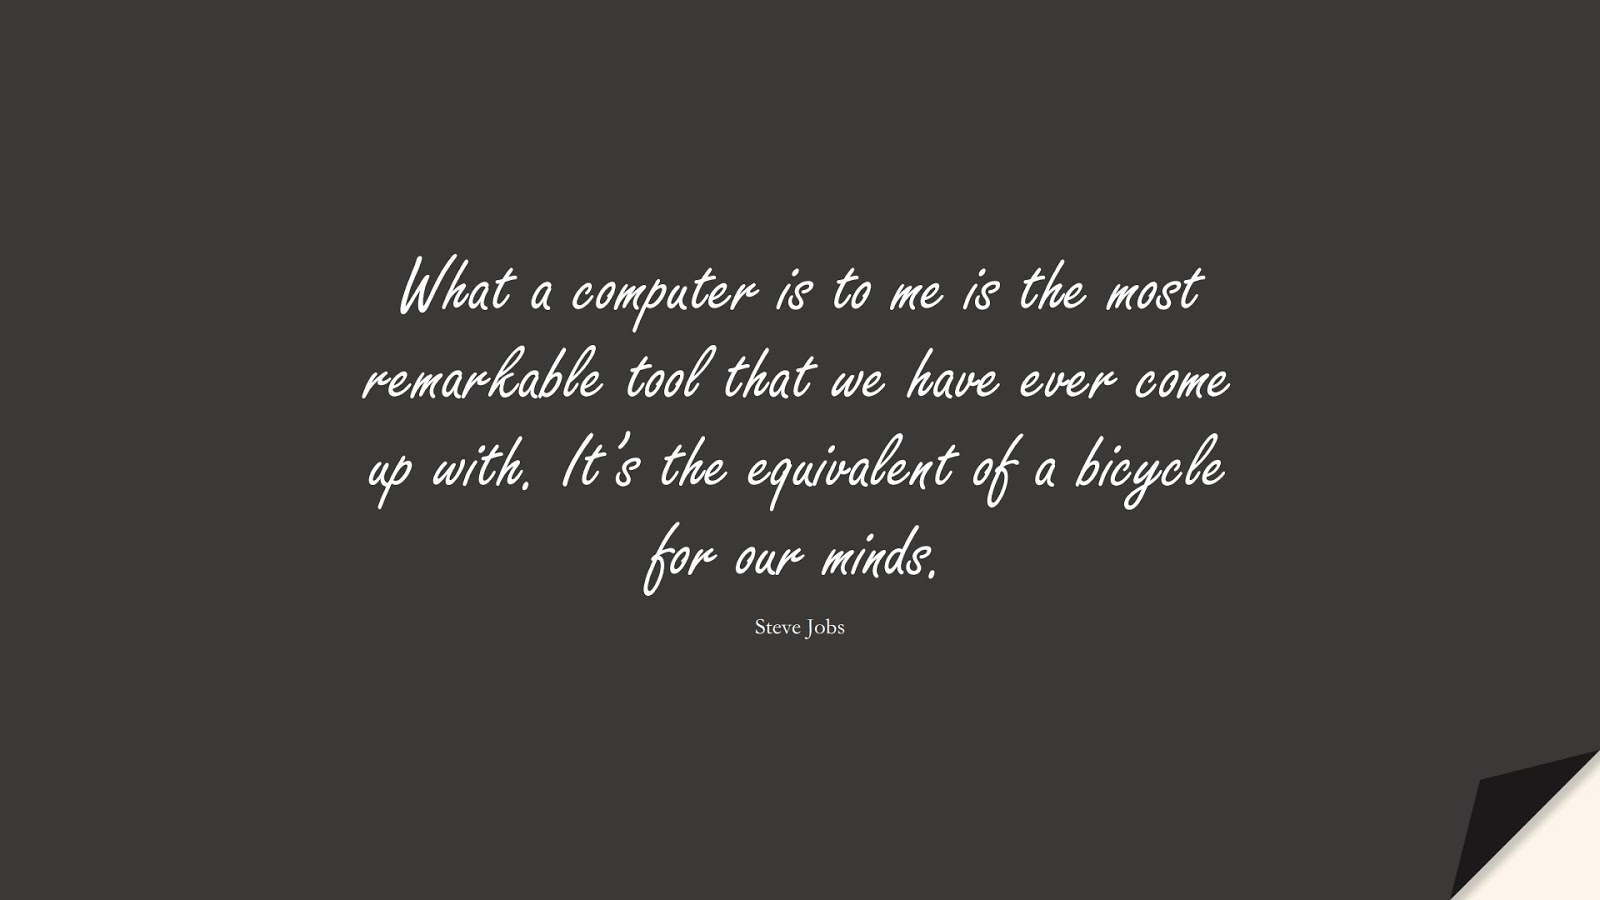 What a computer is to me is the most remarkable tool that we have ever come up with. It's the equivalent of a bicycle for our minds. (Steve Jobs);  #SteveJobsQuotes